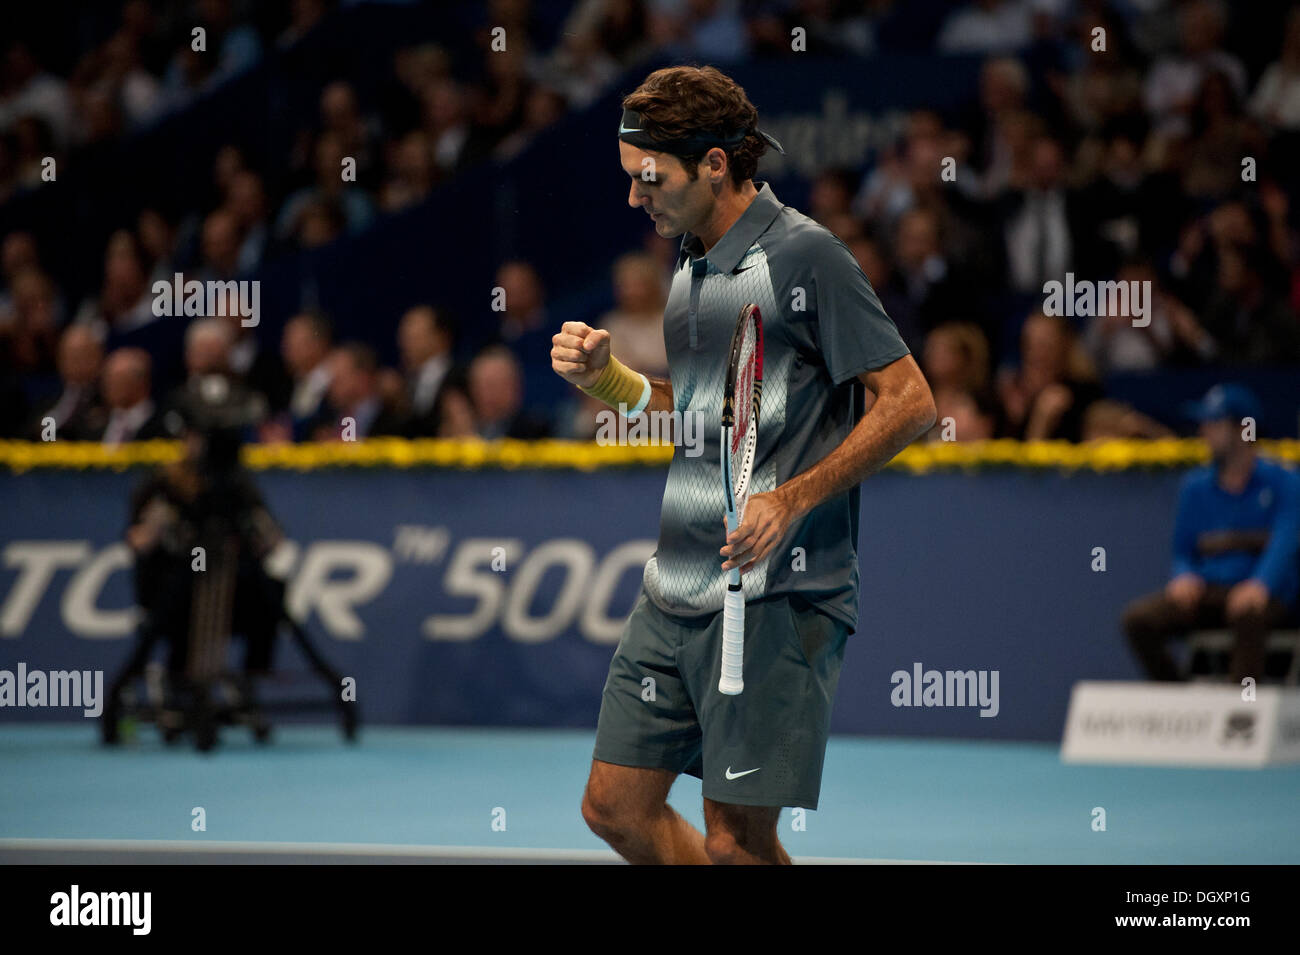 Basel, Switzerland. 27th Oct, 2013. Roger Federer (SUI) cheers during the final of the Swiss Indoors at St. Jakobshalle on Sunday. Photo: Miroslav Dakov/ Alamy Live News - Stock Image